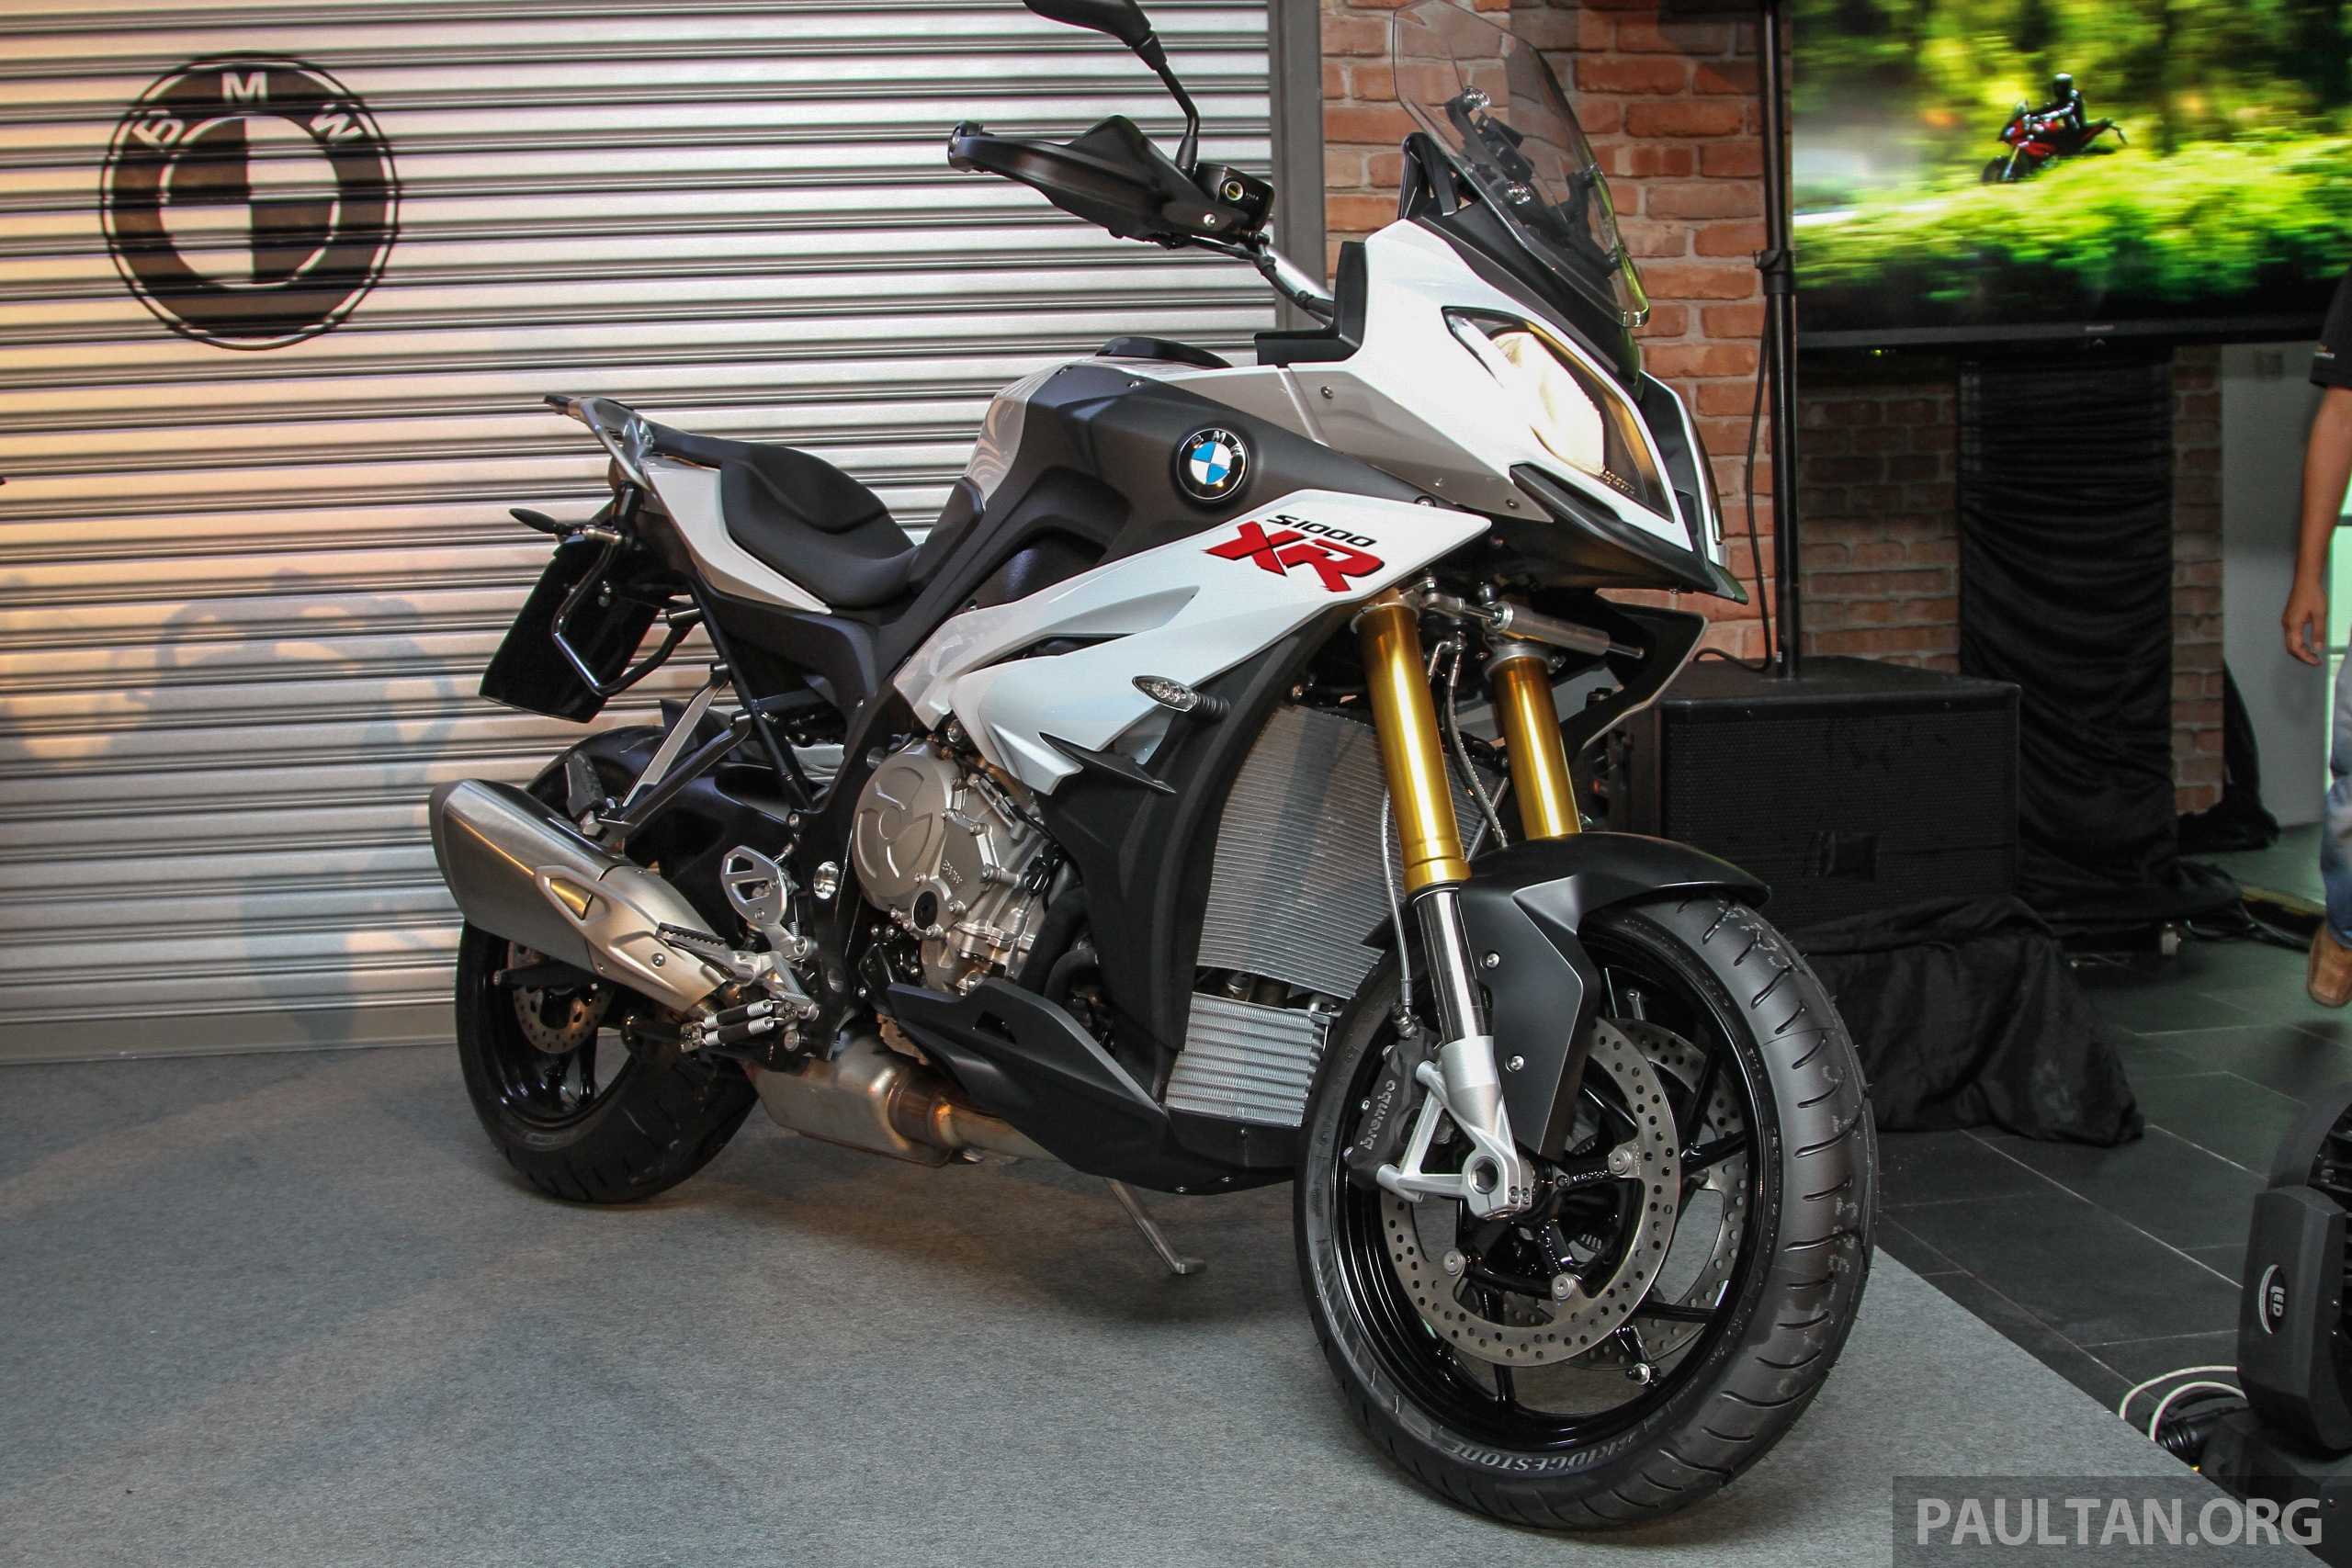 Bmw S 1000 Xr R 1200 Rs Launched From Rm102k Image 361035